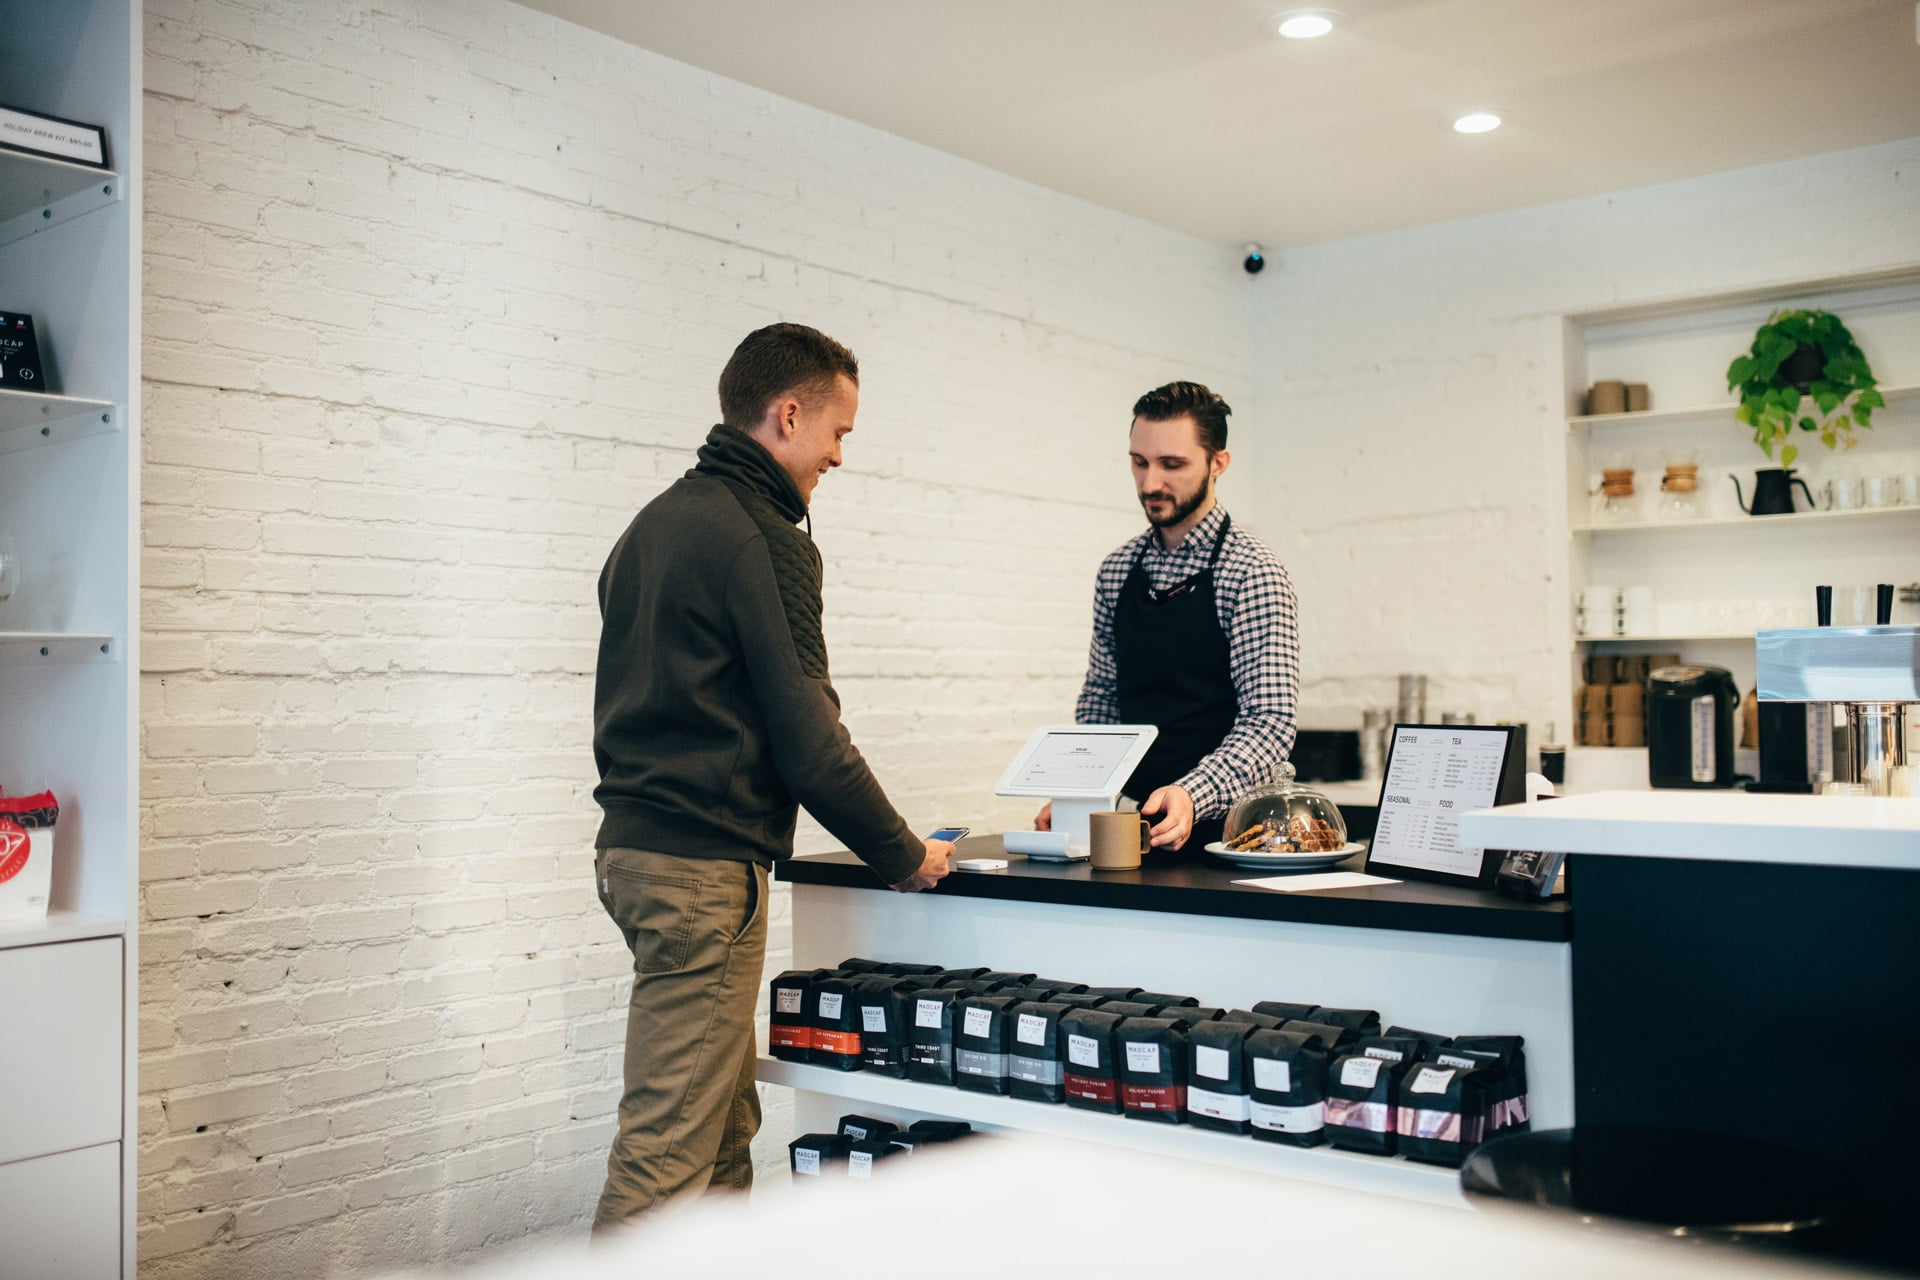 Pangea IoT blog: The IoT opportunity in 2021 - Retail